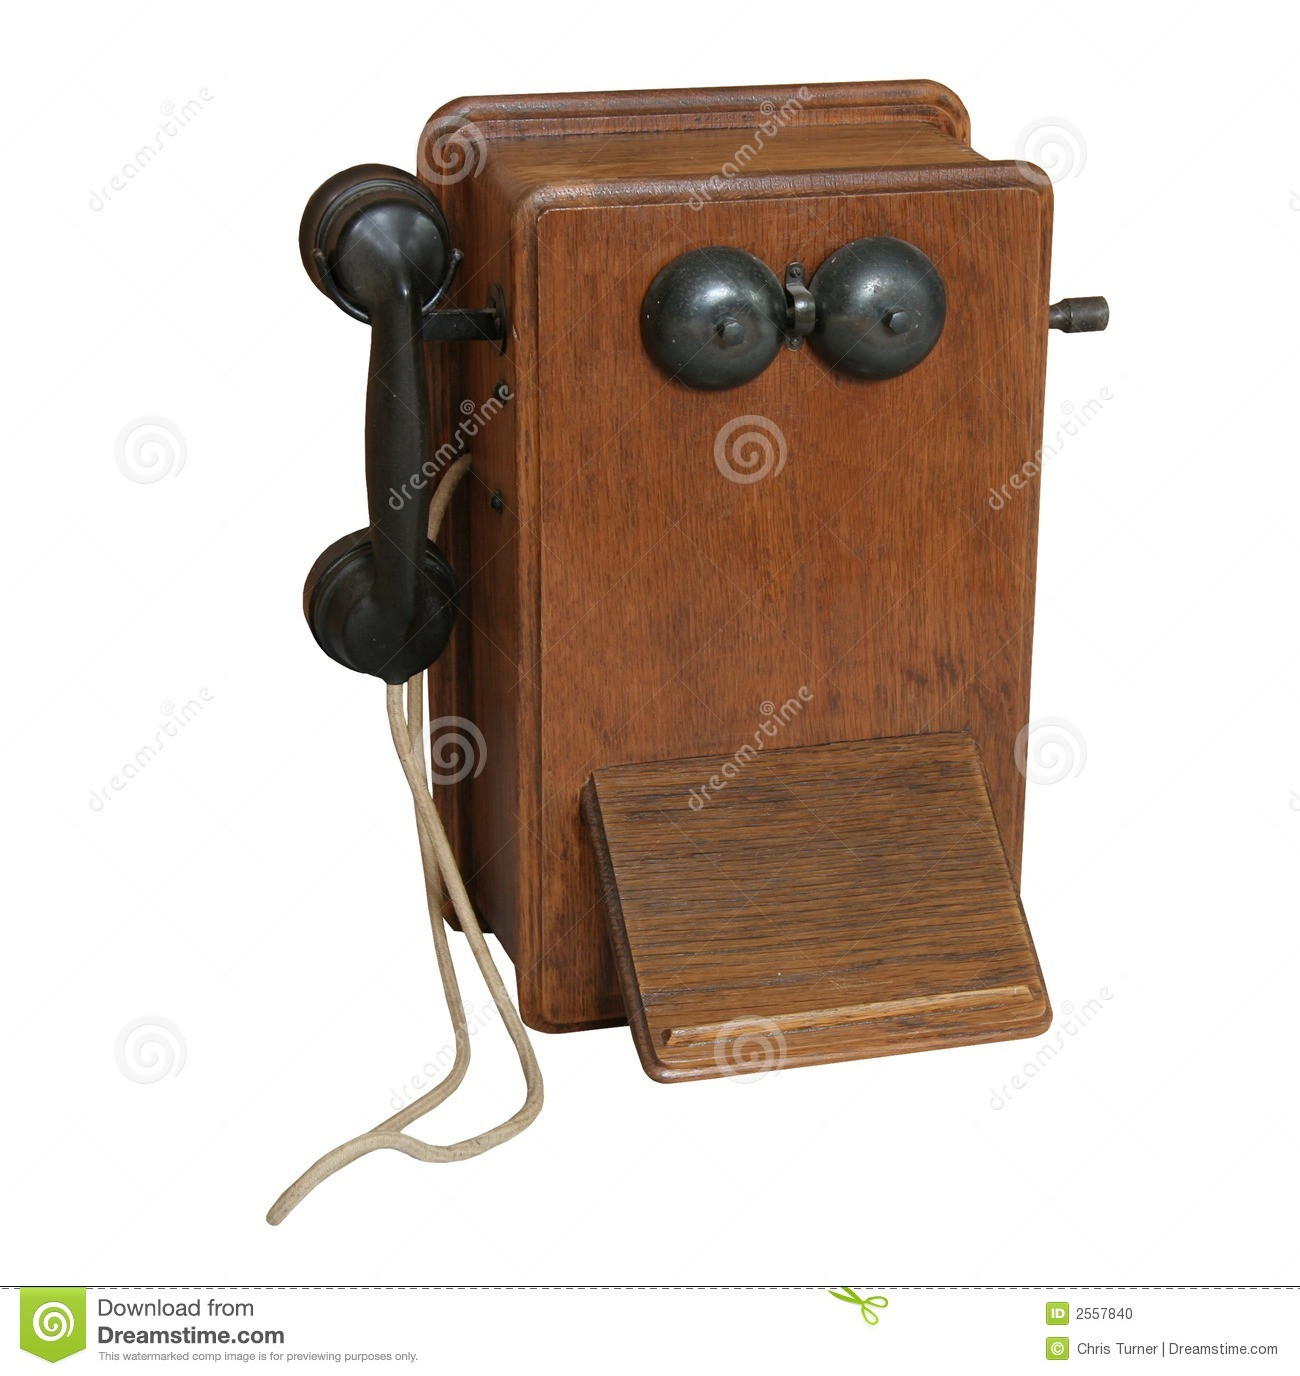 Best Of Old Wooden Telephone Stock Image Old Wooden Phone Of Adorable 43 Images Old Wooden Phone